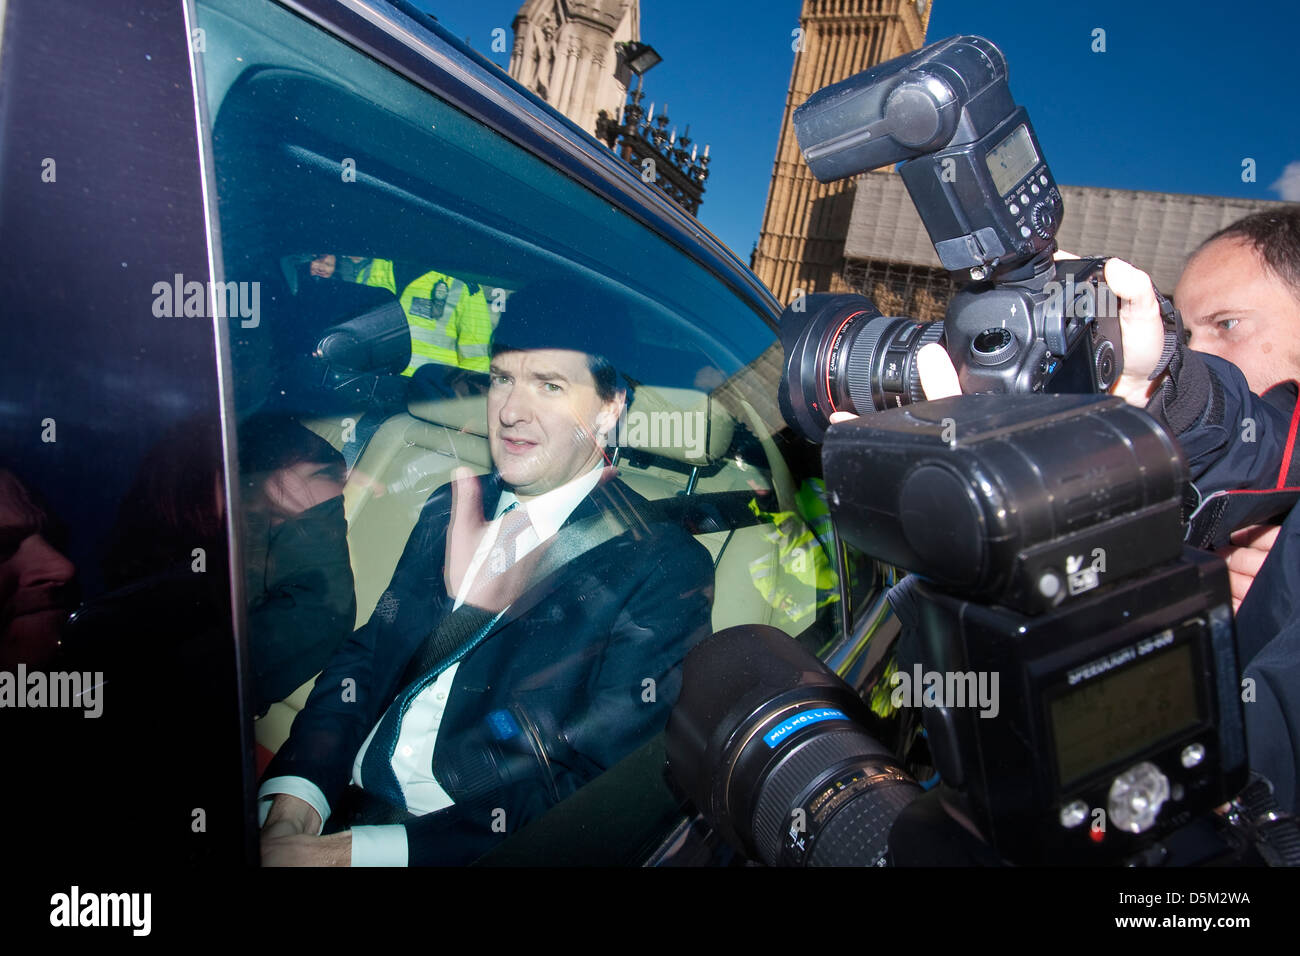 George Osborne, Chancellor of the Exchequer leaving the Houses of Parliament whilst press take pictures through - Stock Image